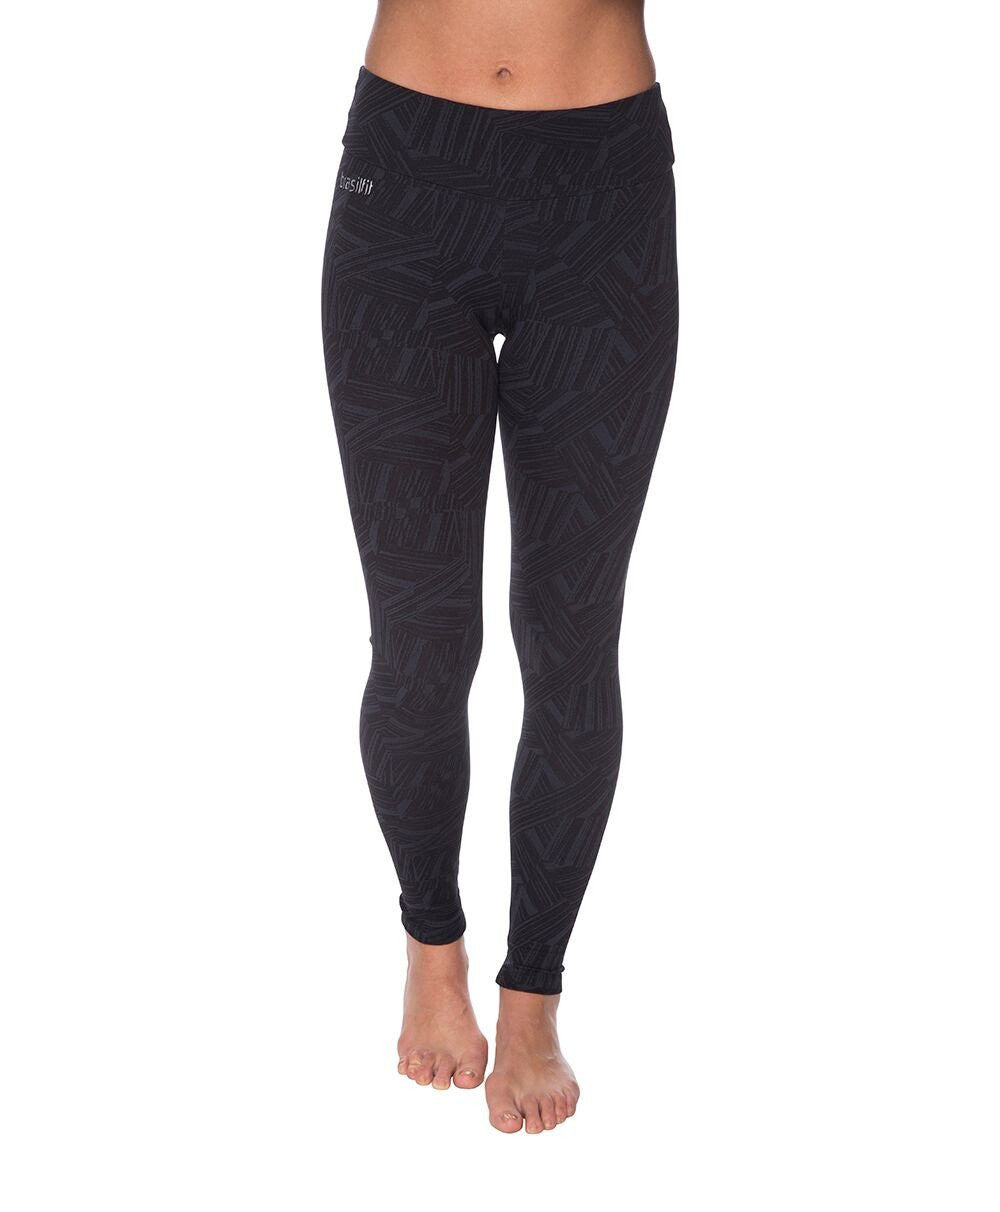 Side view product image for Brasilfit Faith Full Length activewear leggings.  Faith leggings are part of our textured activewear legging collection that is focused on performance, high compression activewear.